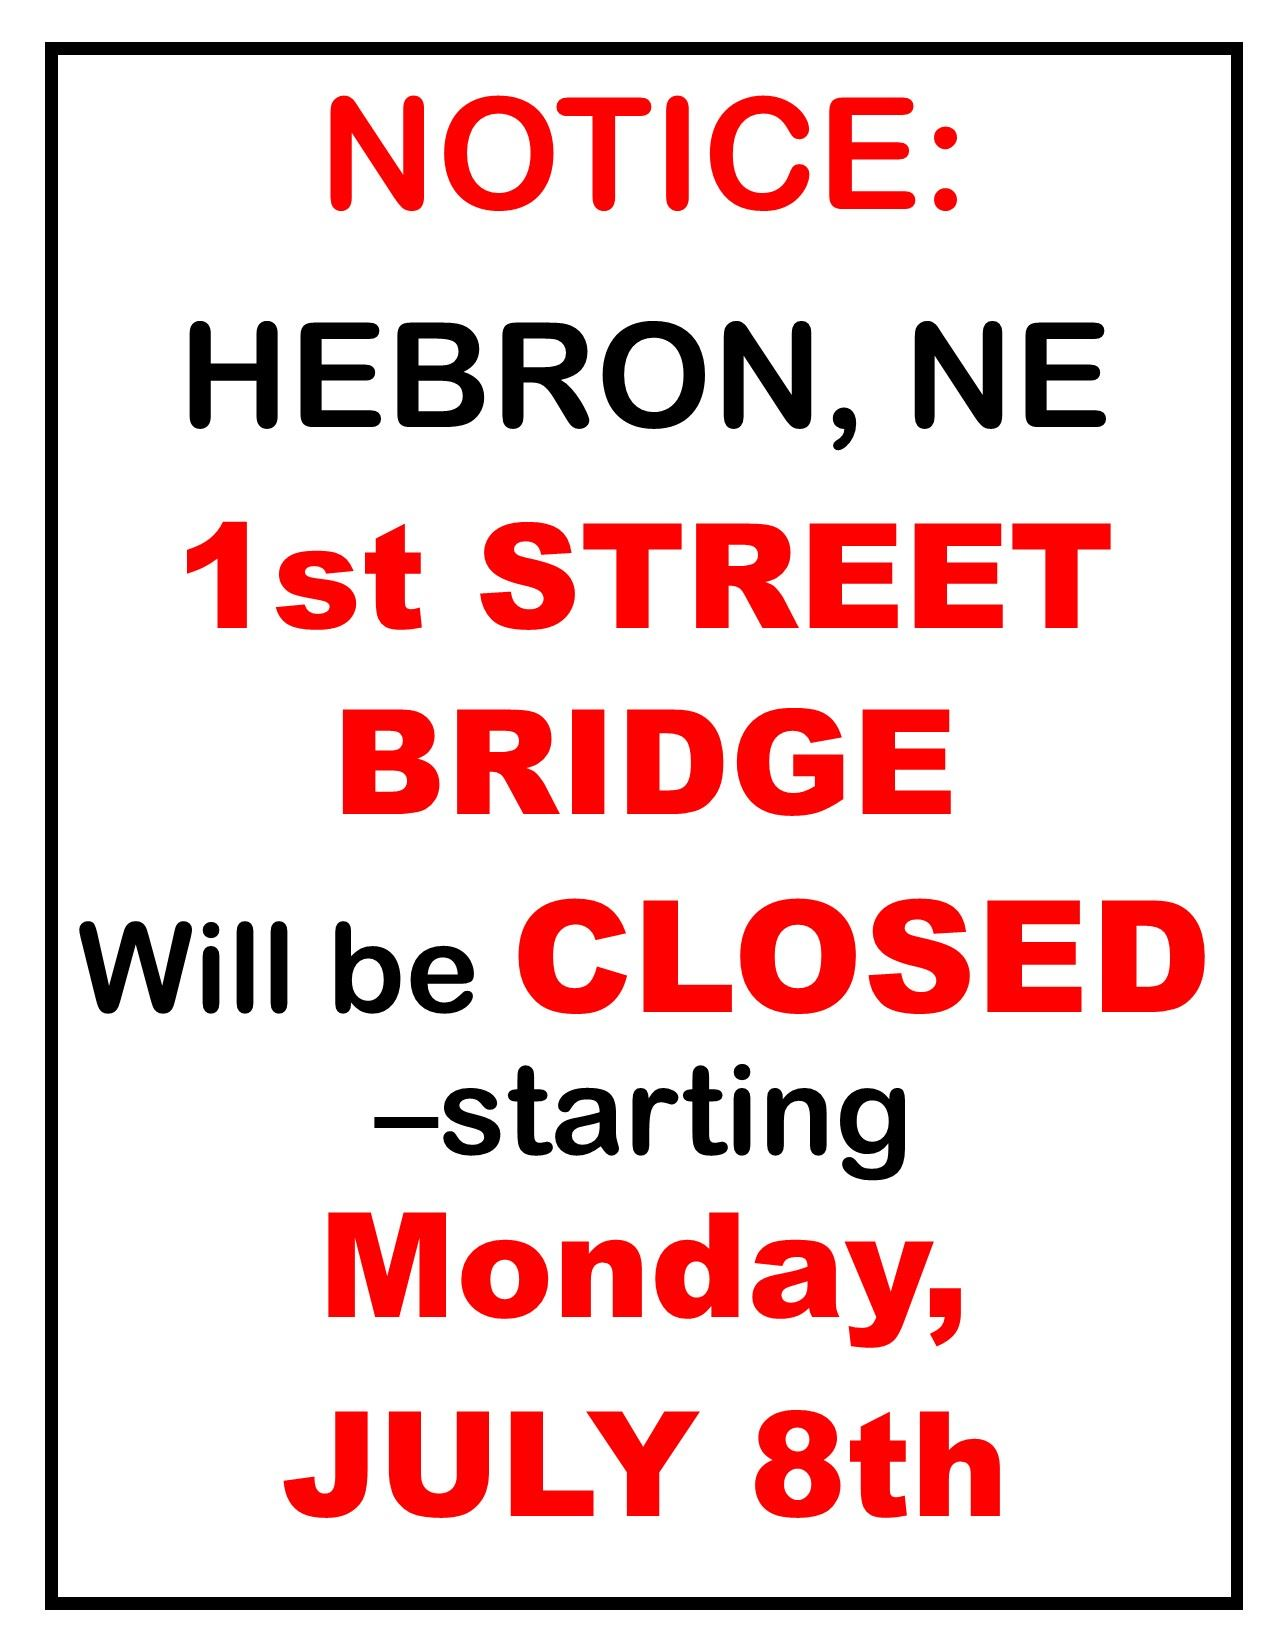 1st STREET BRIDGE NOTICE